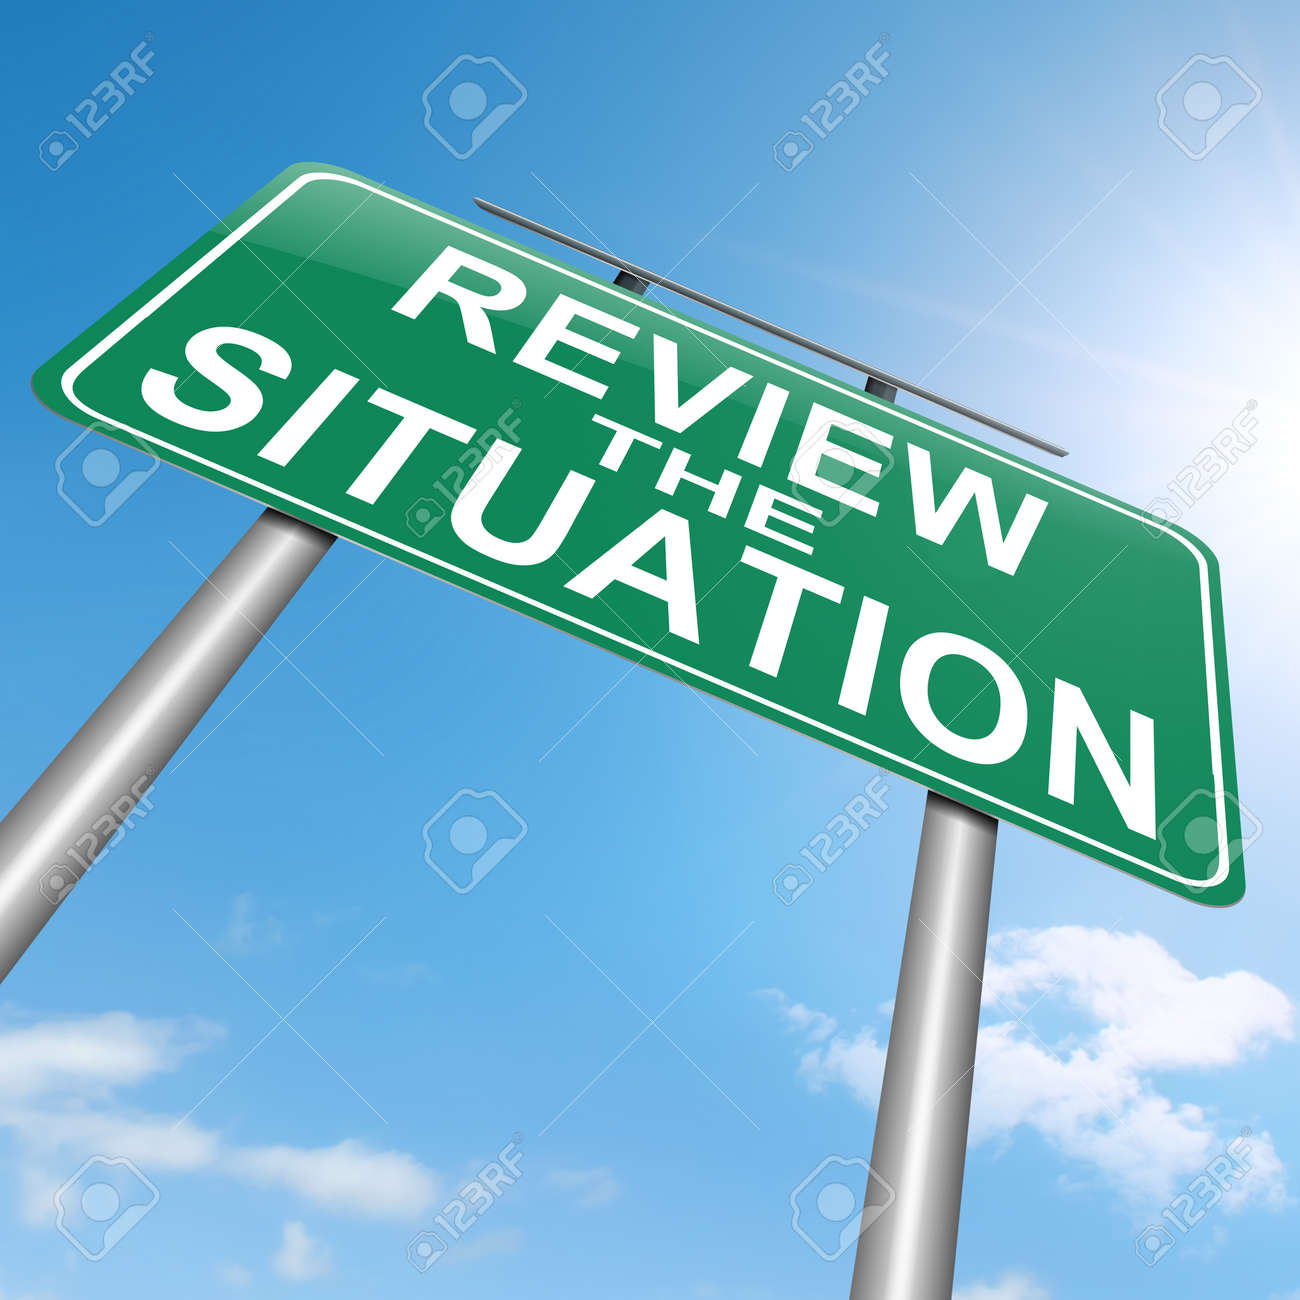 Illustration depicting a roadsign with a review the situation concept. White background. Stock Illustration - 16708701